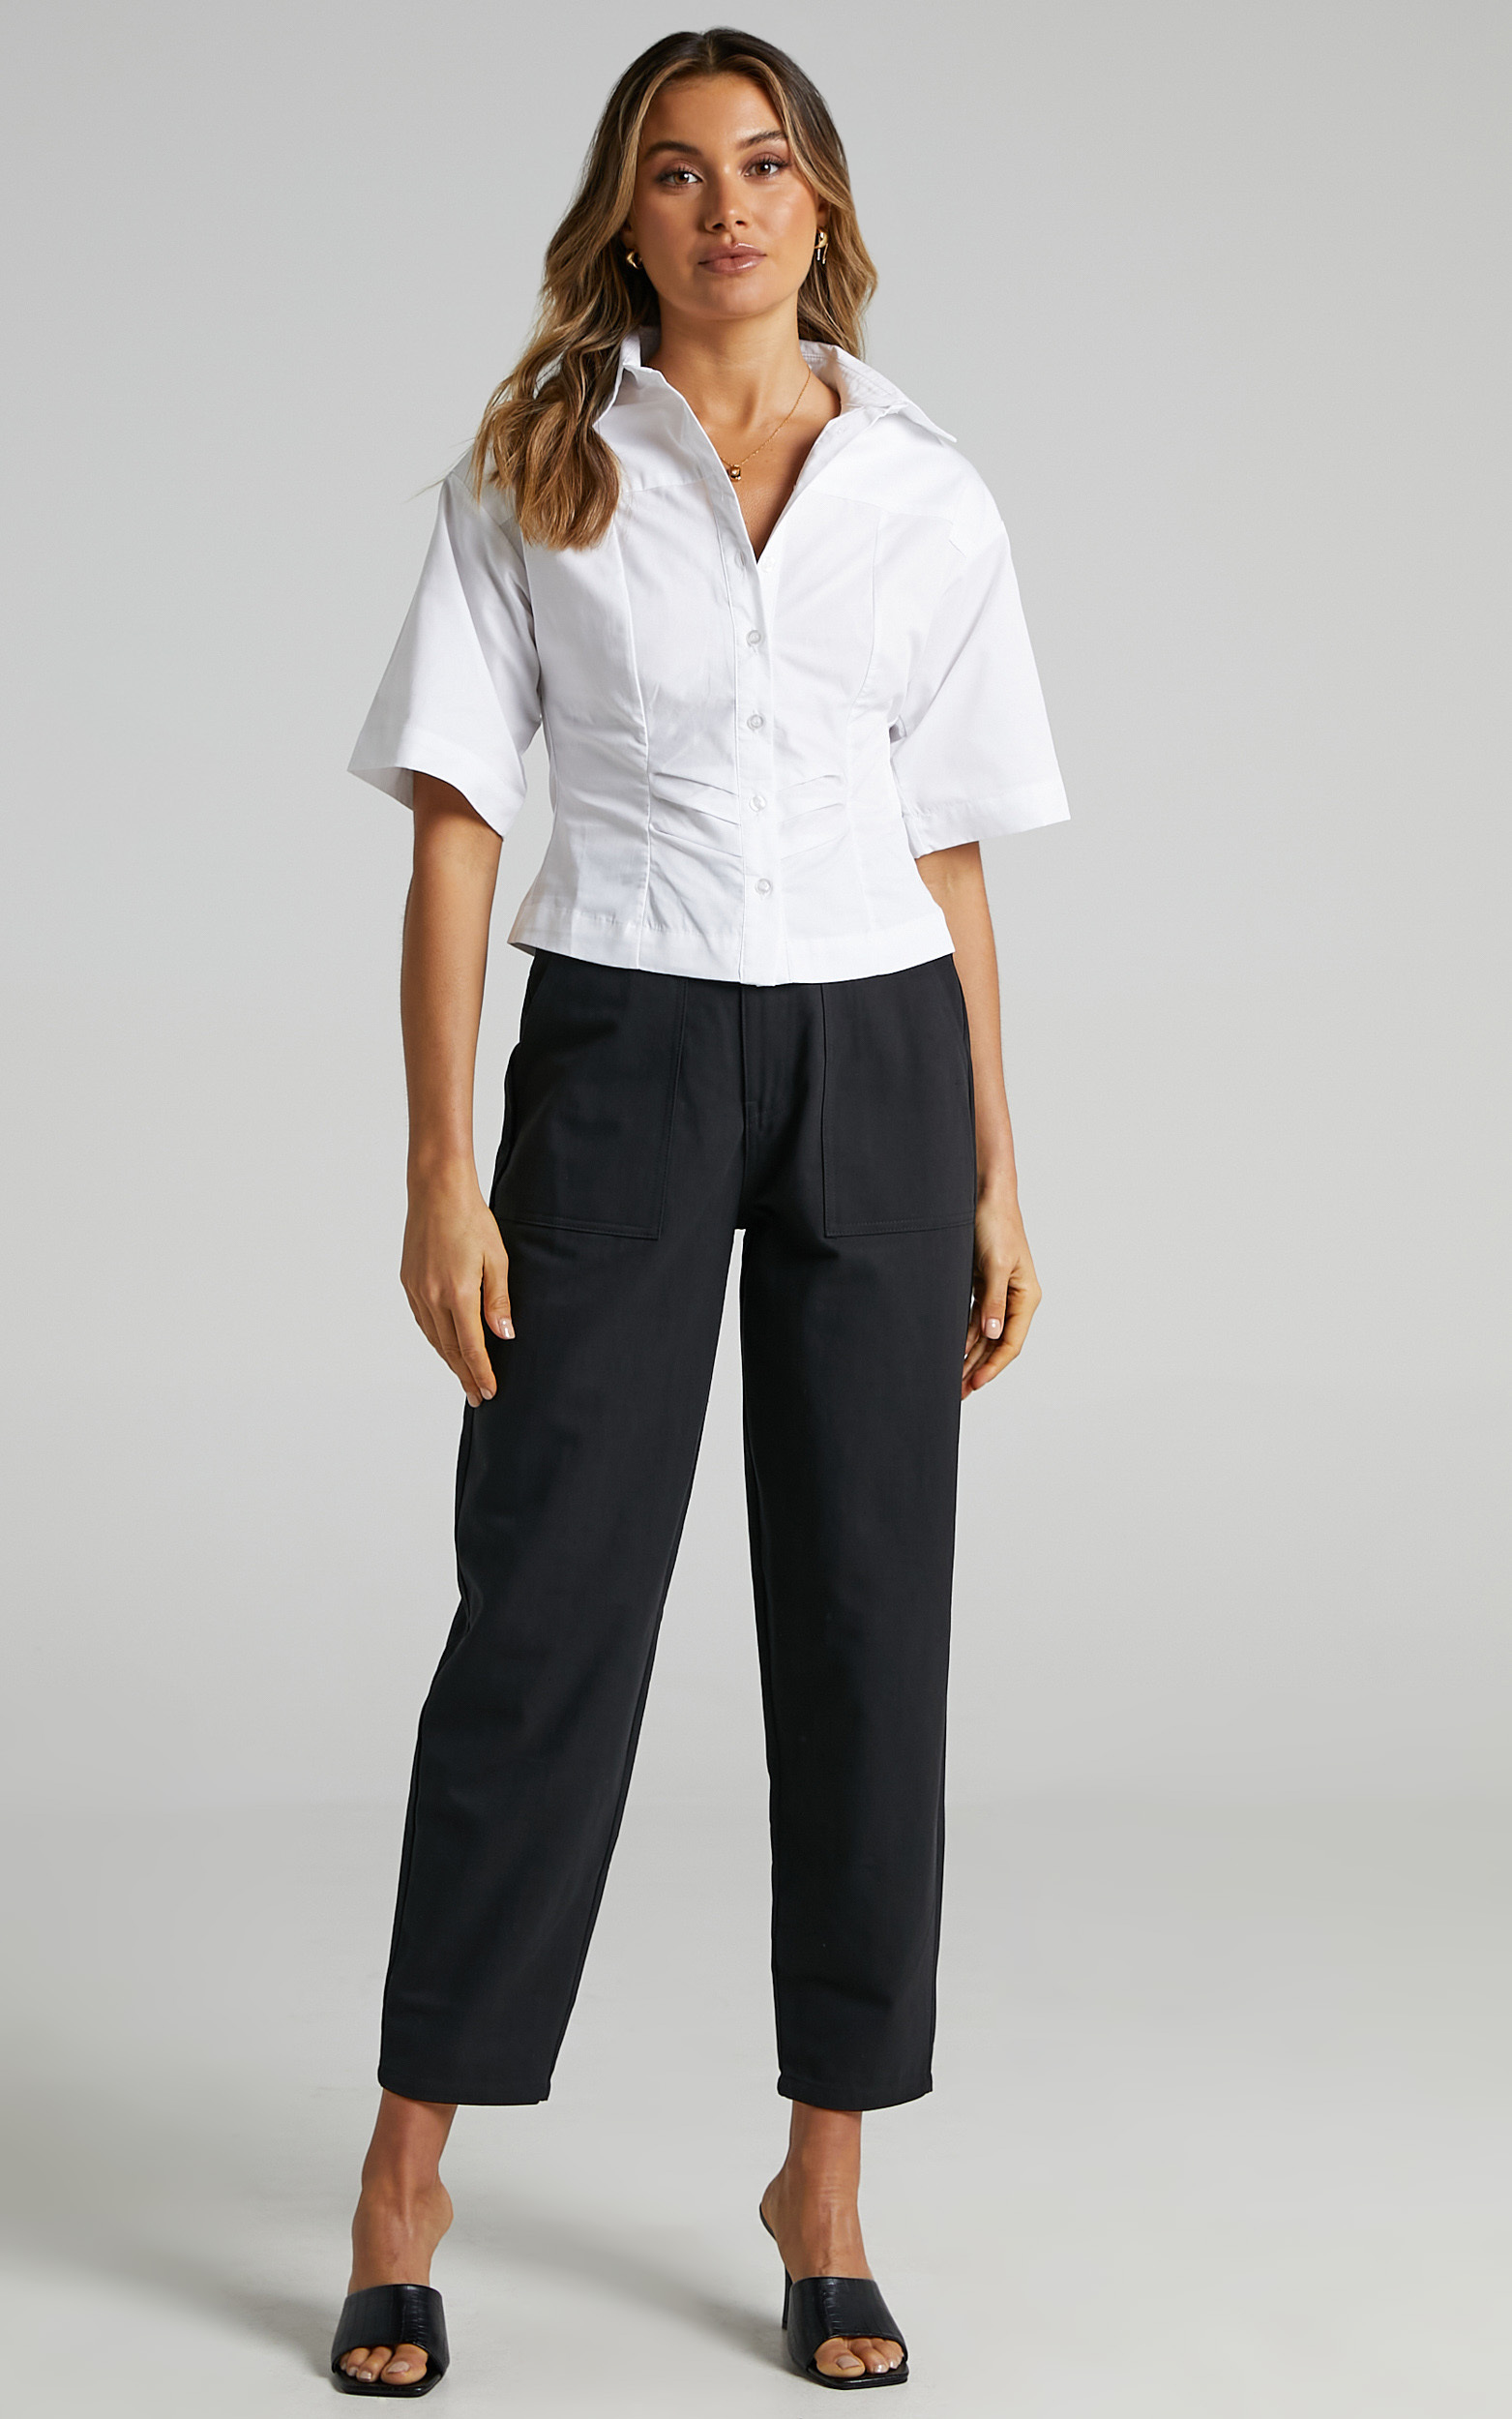 Shireen Shirt in White - 6 (XS), White, hi-res image number null